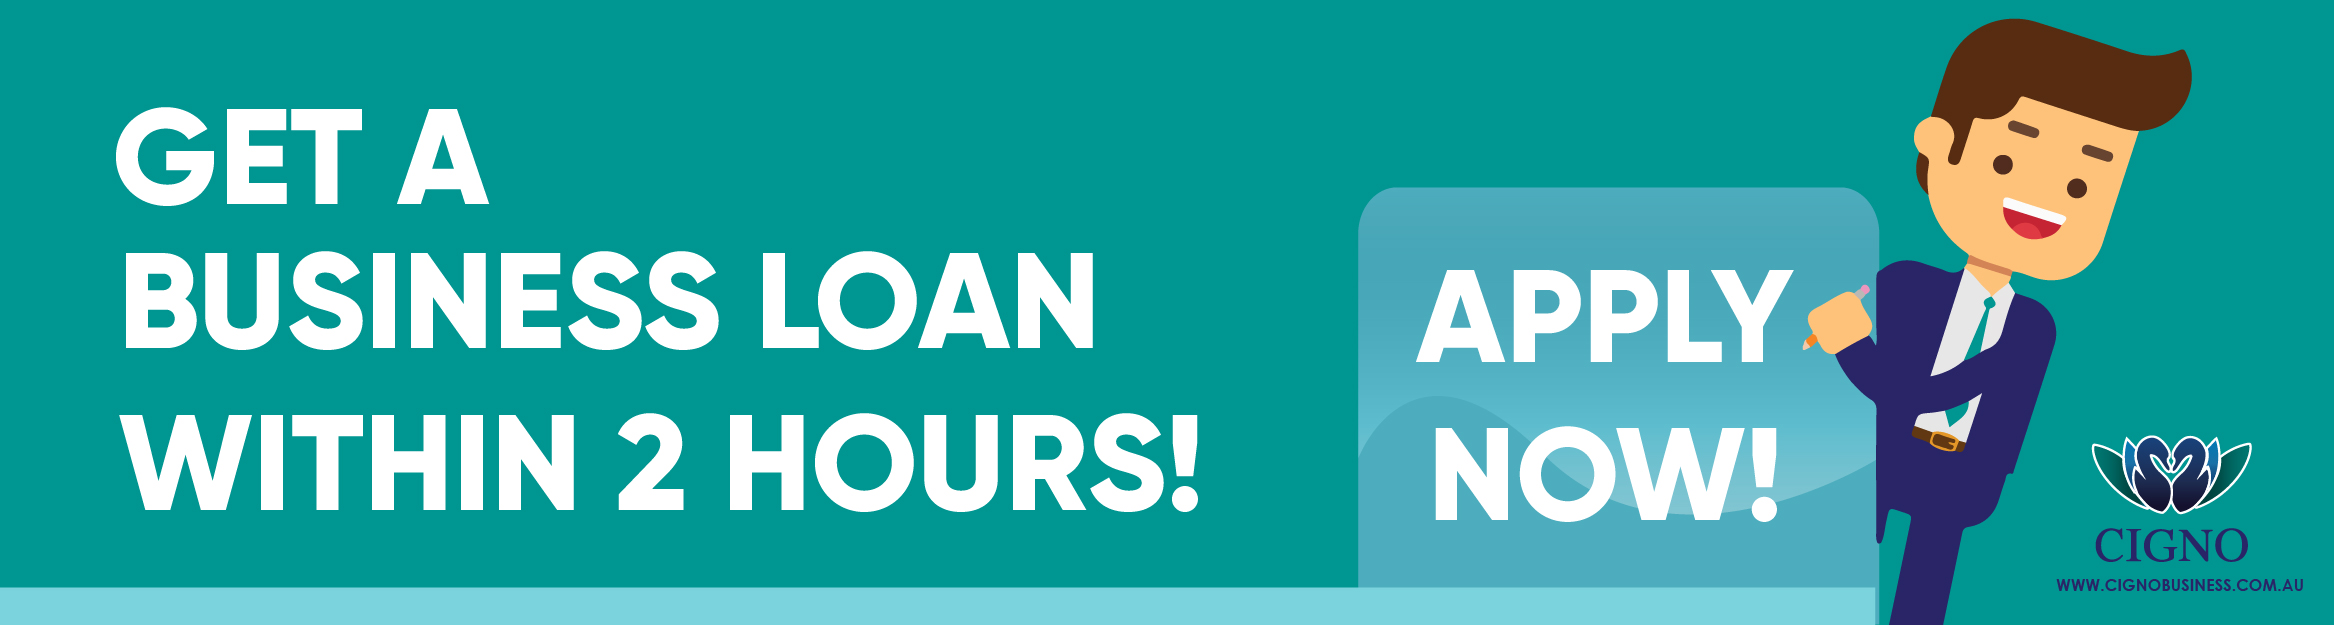 Cigno Business Solutions - Business Loans in Australia